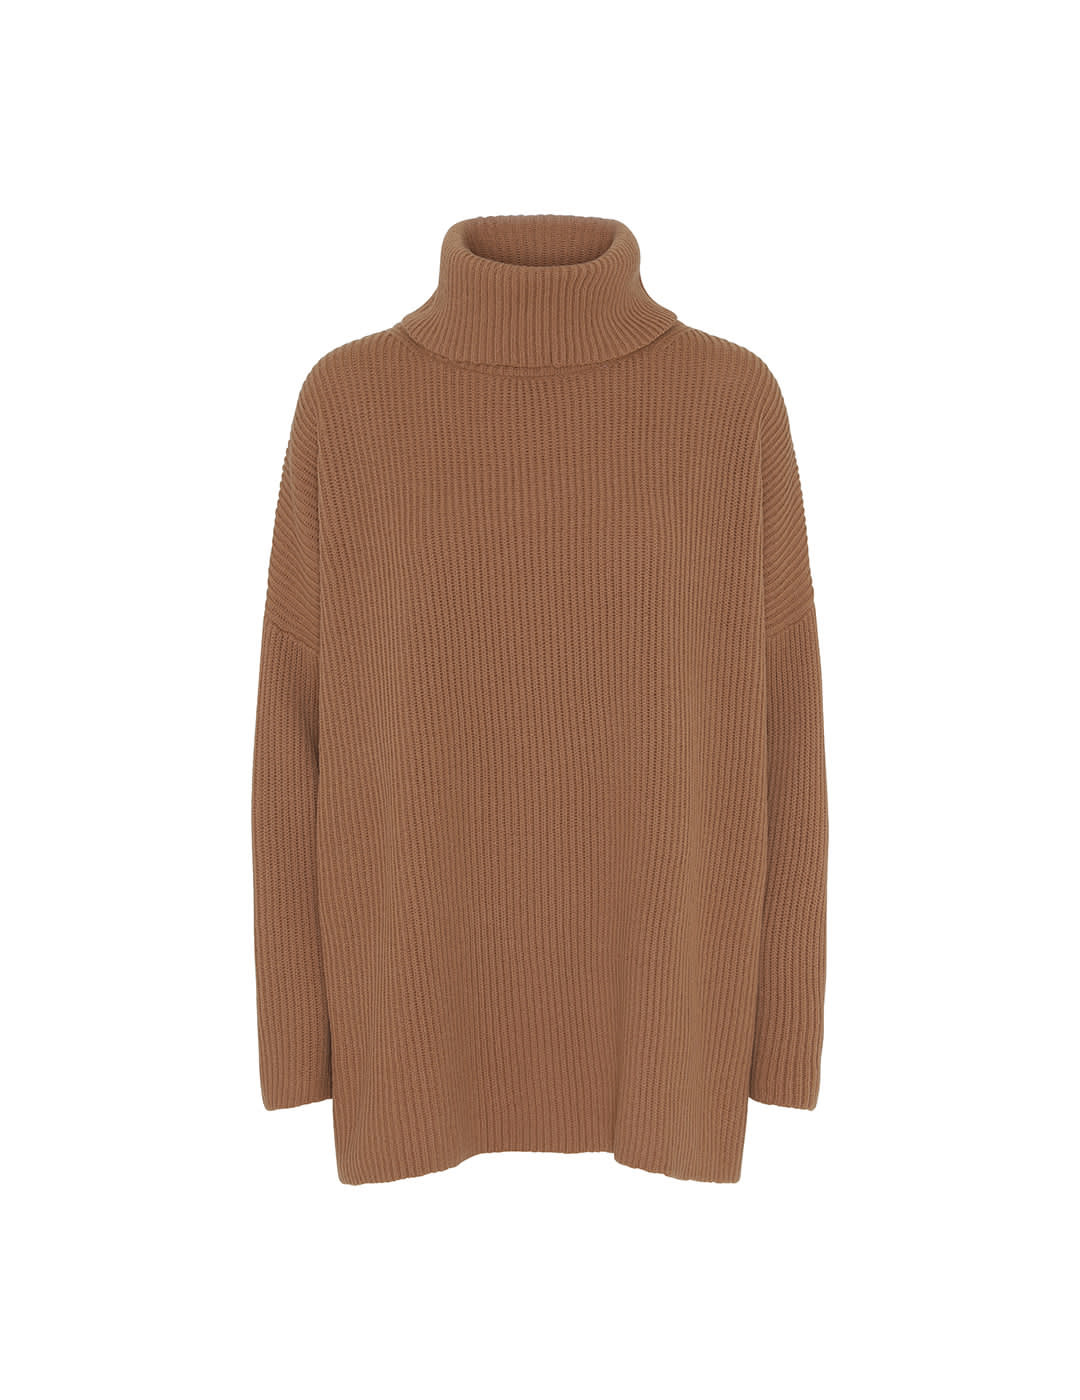 Billy Knit Sand Brown Organic Wool-1